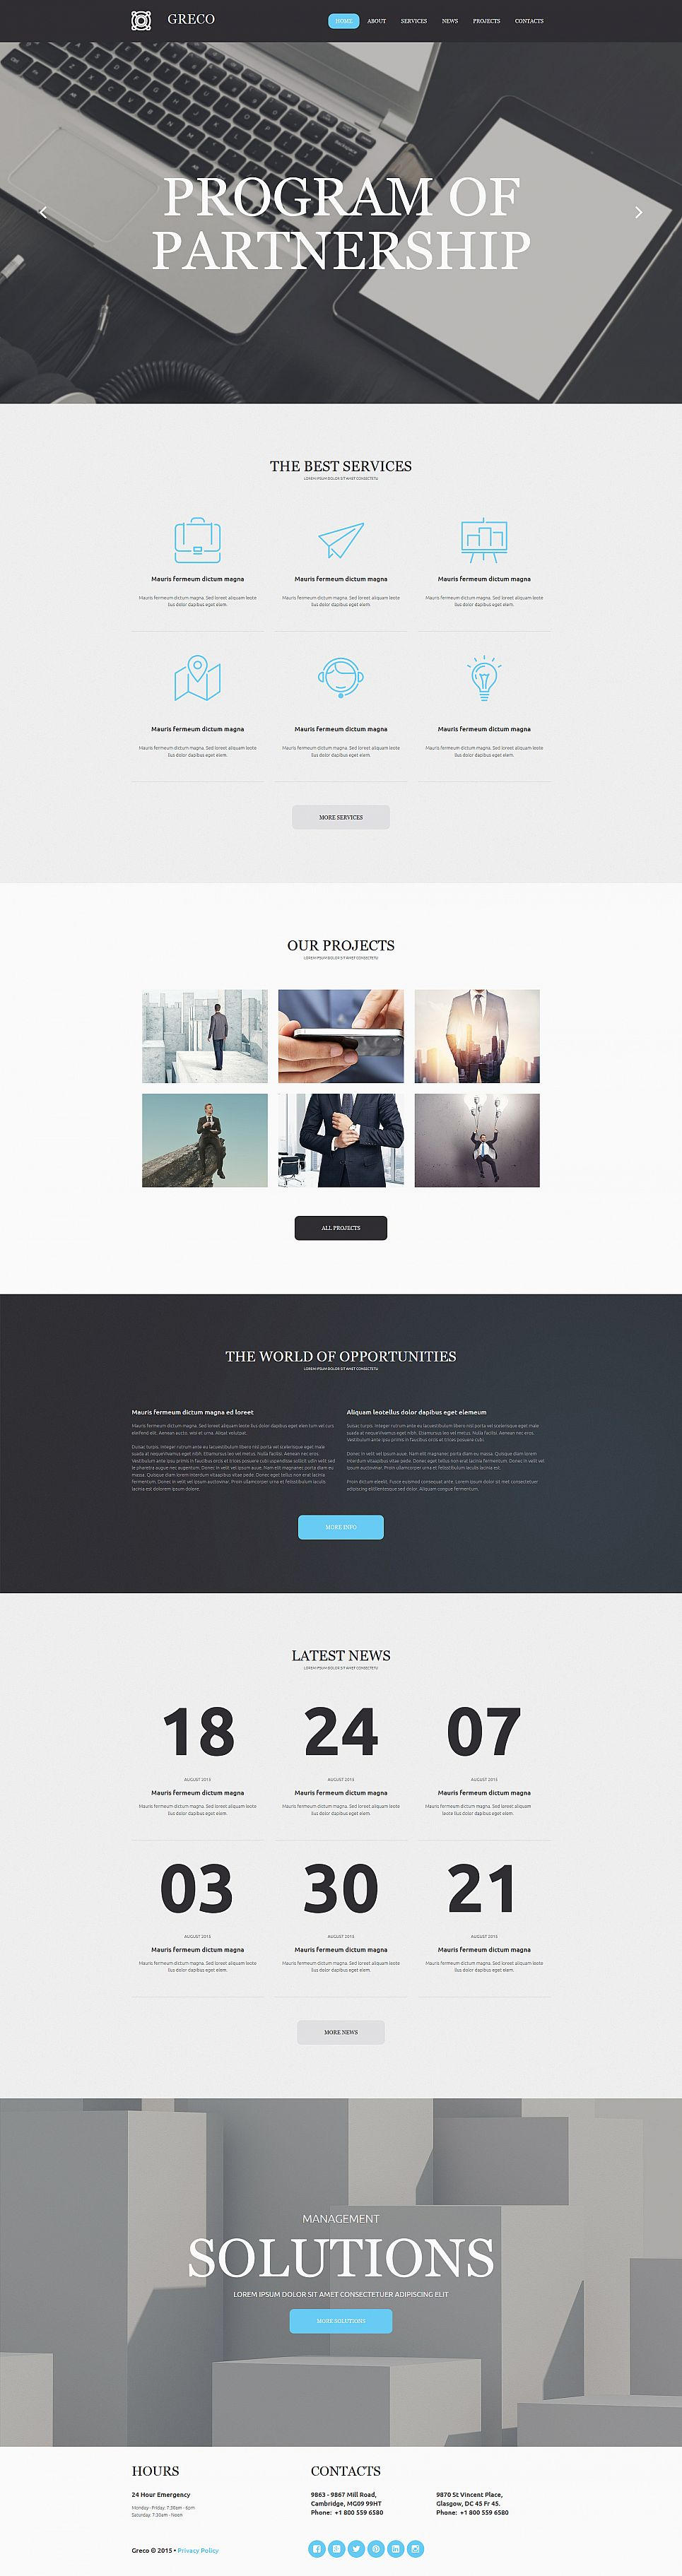 Flat Business Website Design - image